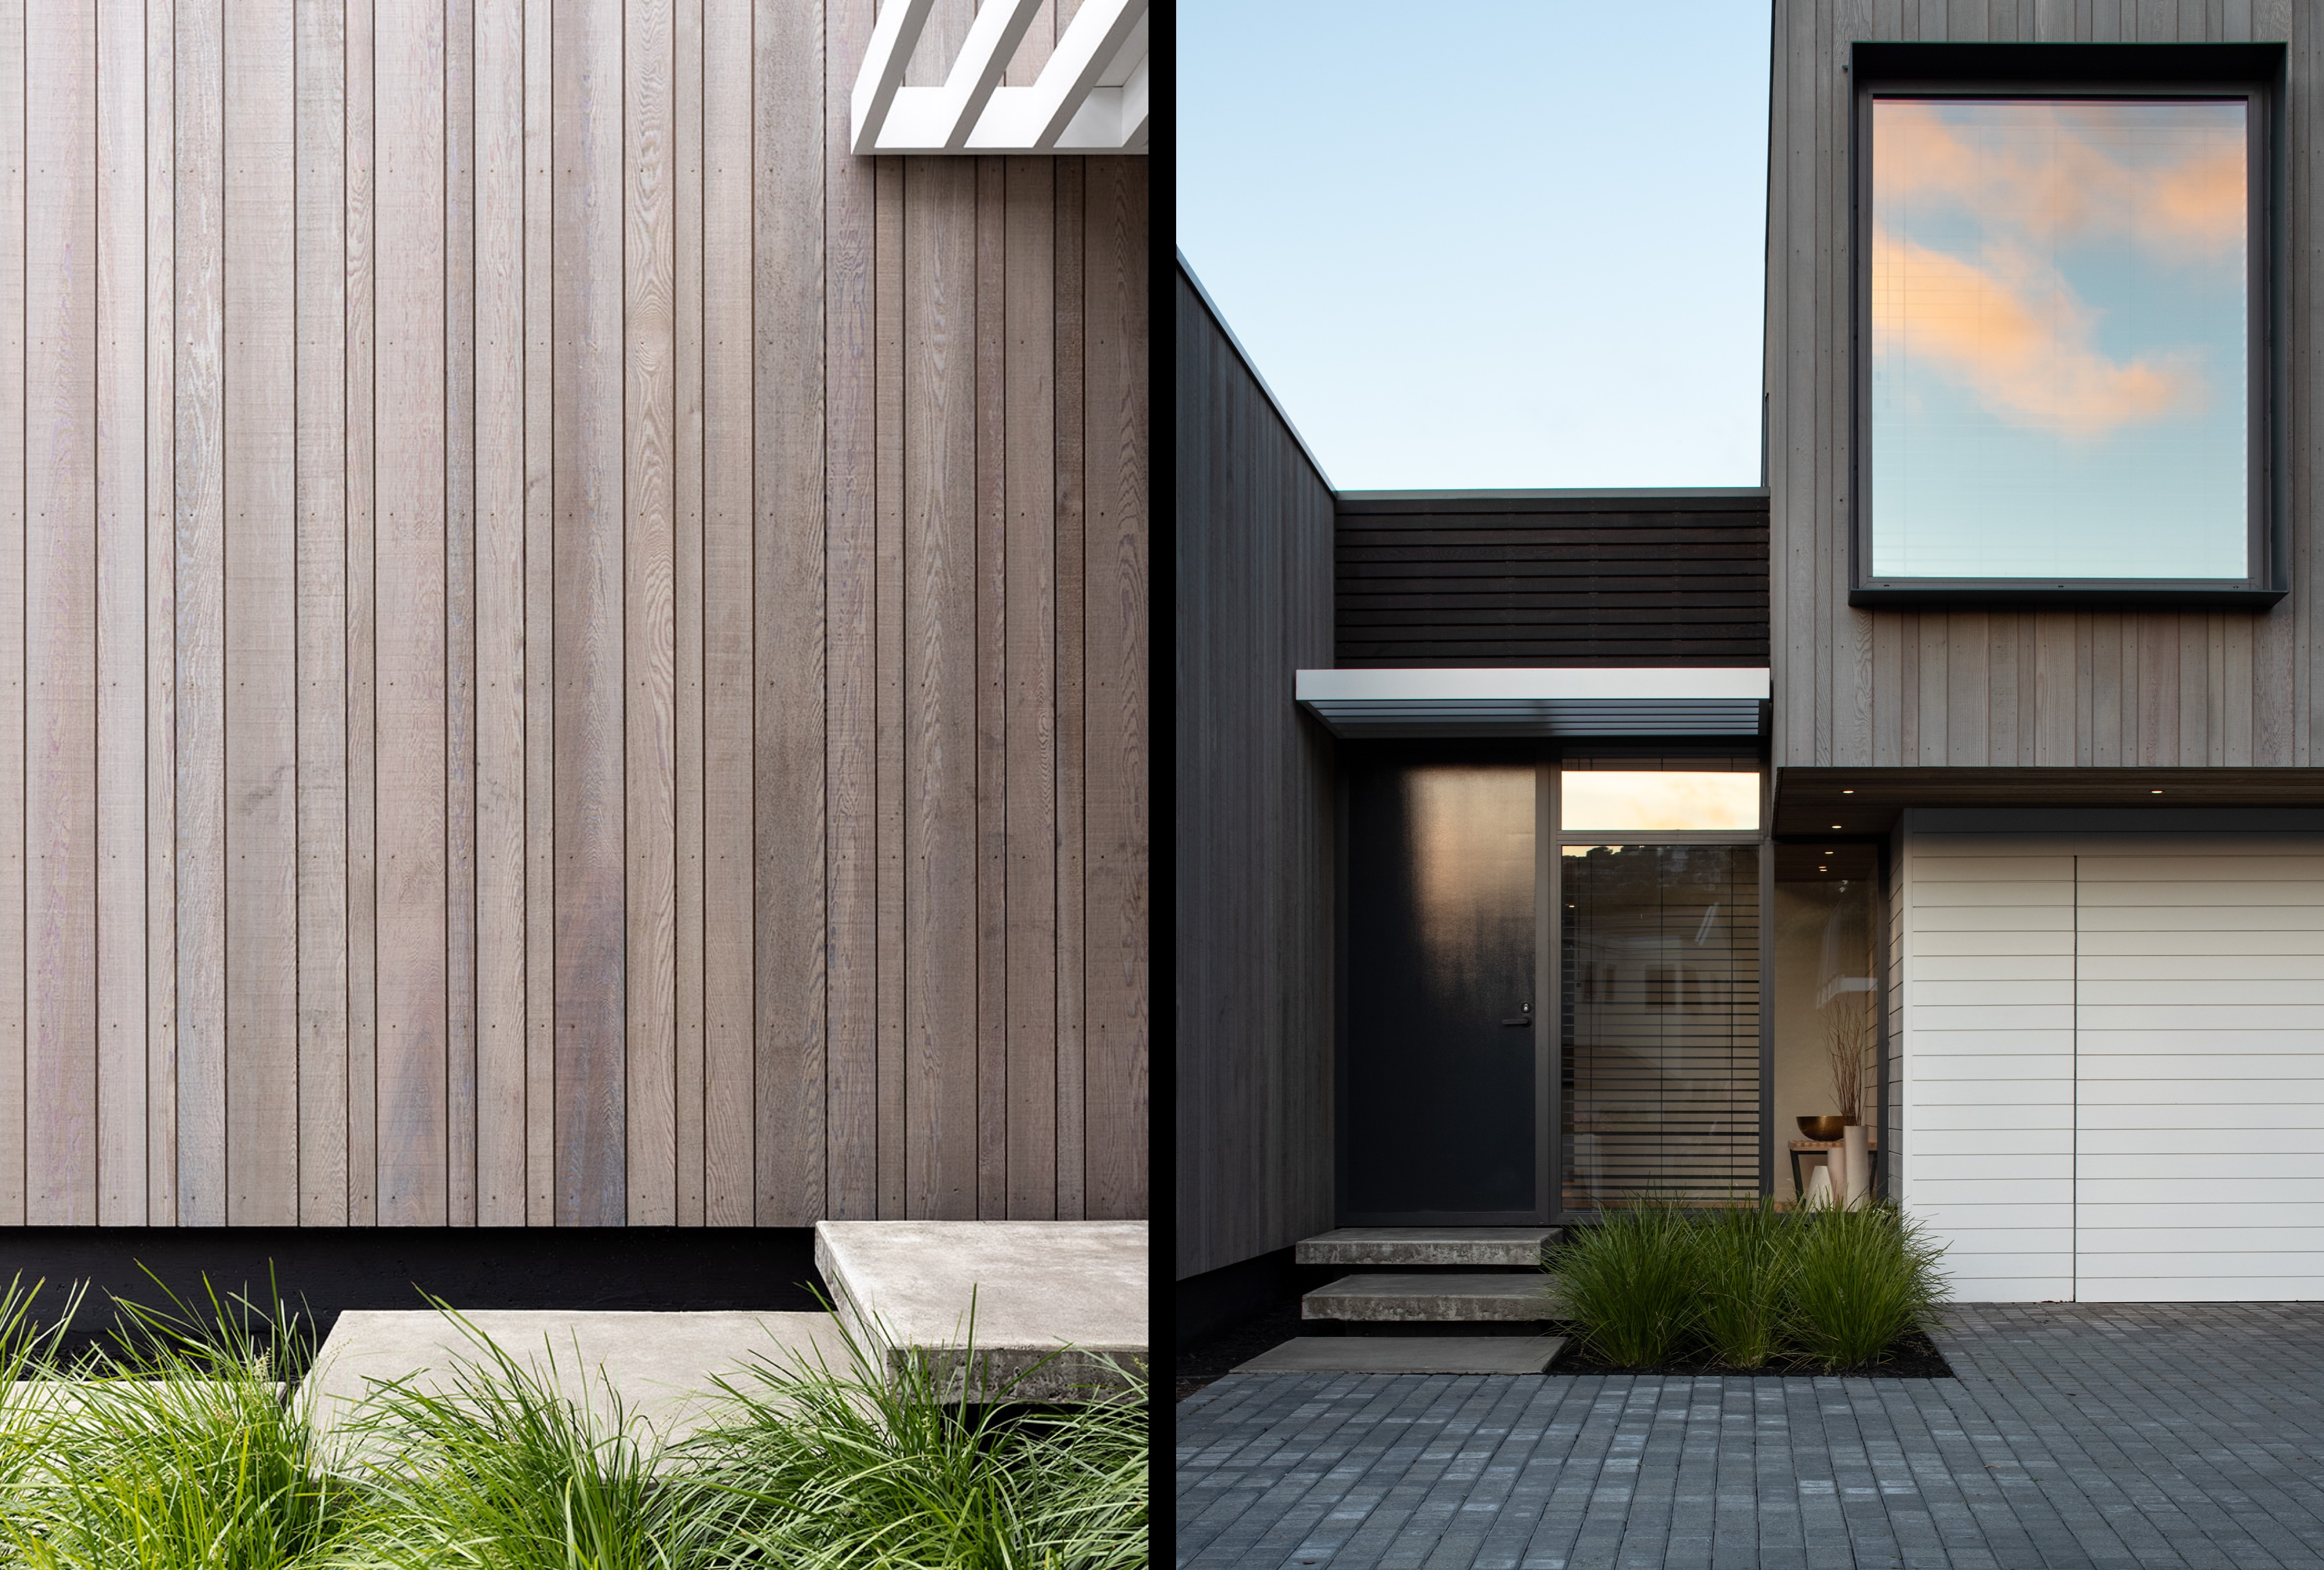 Composite of the Broad Oaks Cedar cladding (depicted on the left), and an exterior of the entranceway (depicted on the right)